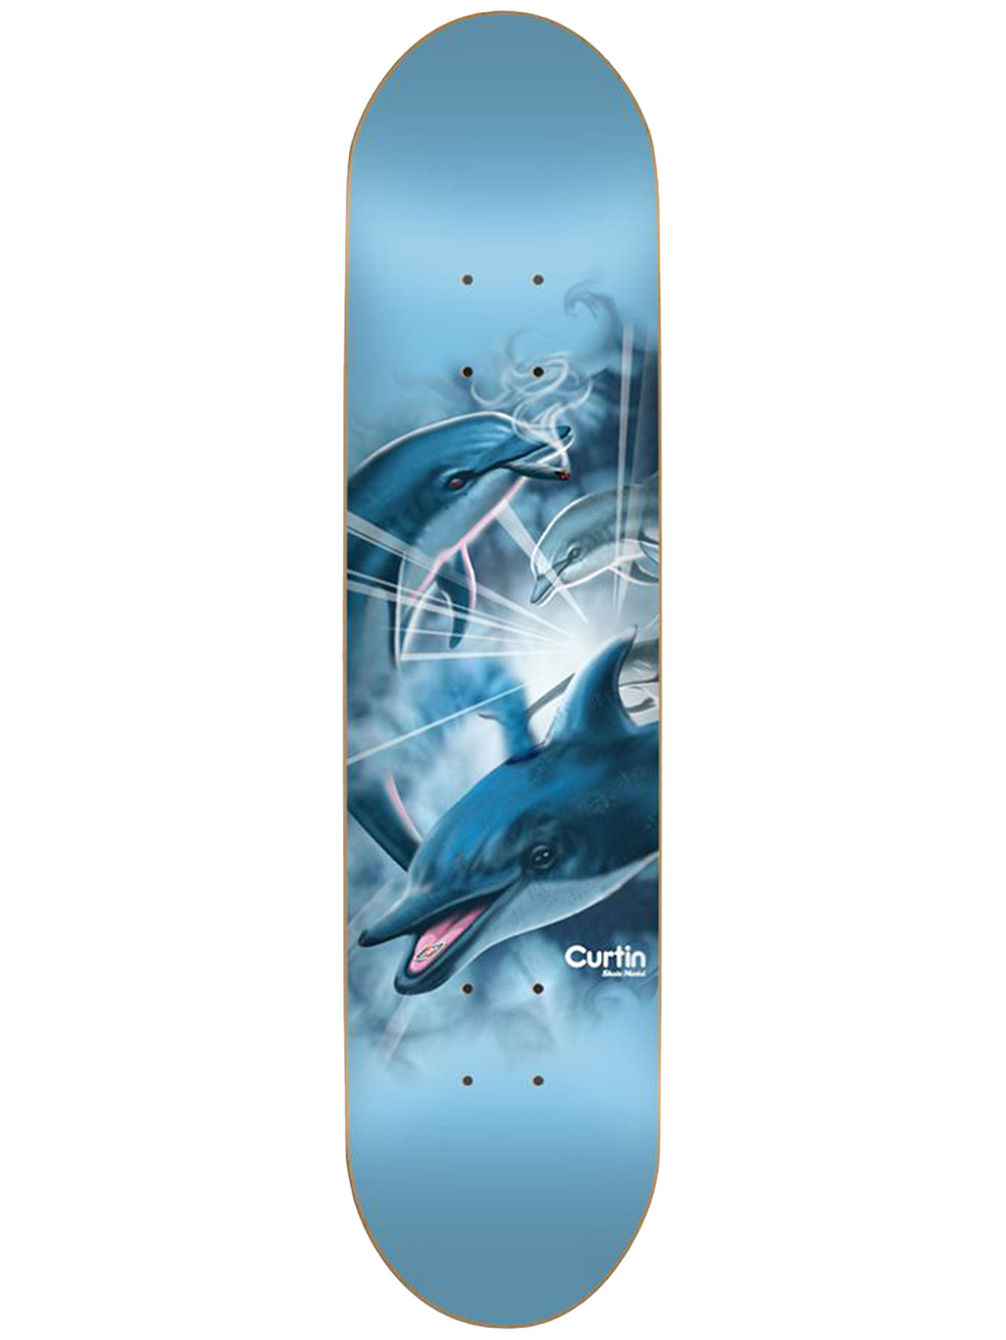 "Curtin Dolphins 8.25"" Skate Deck"